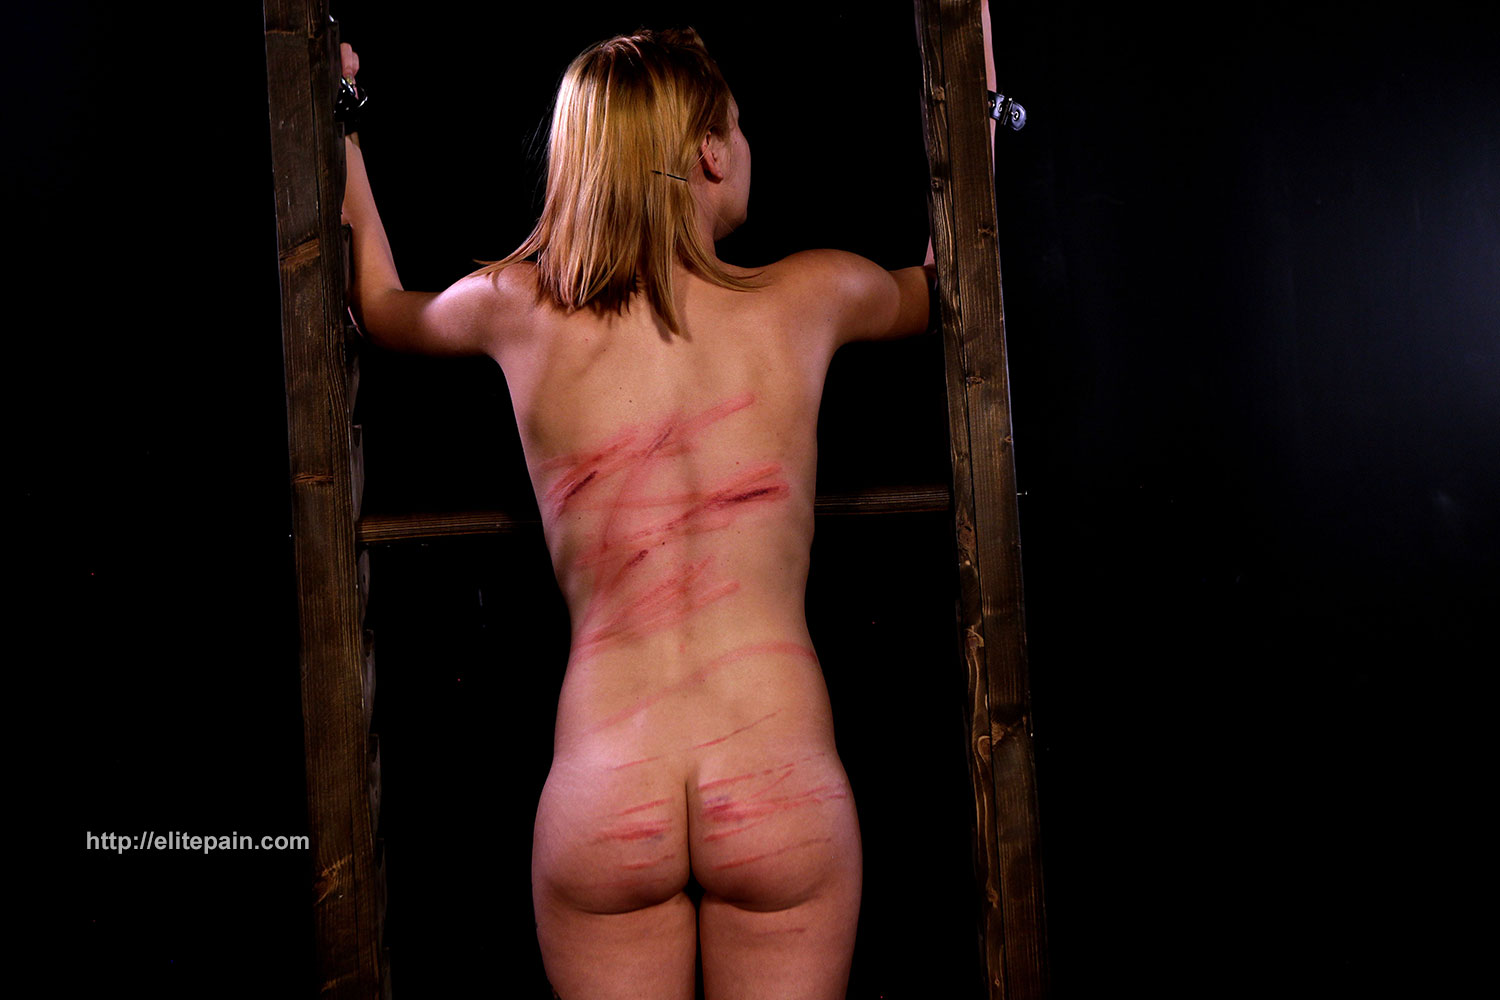 Slave endures being suspended by her breasts 7